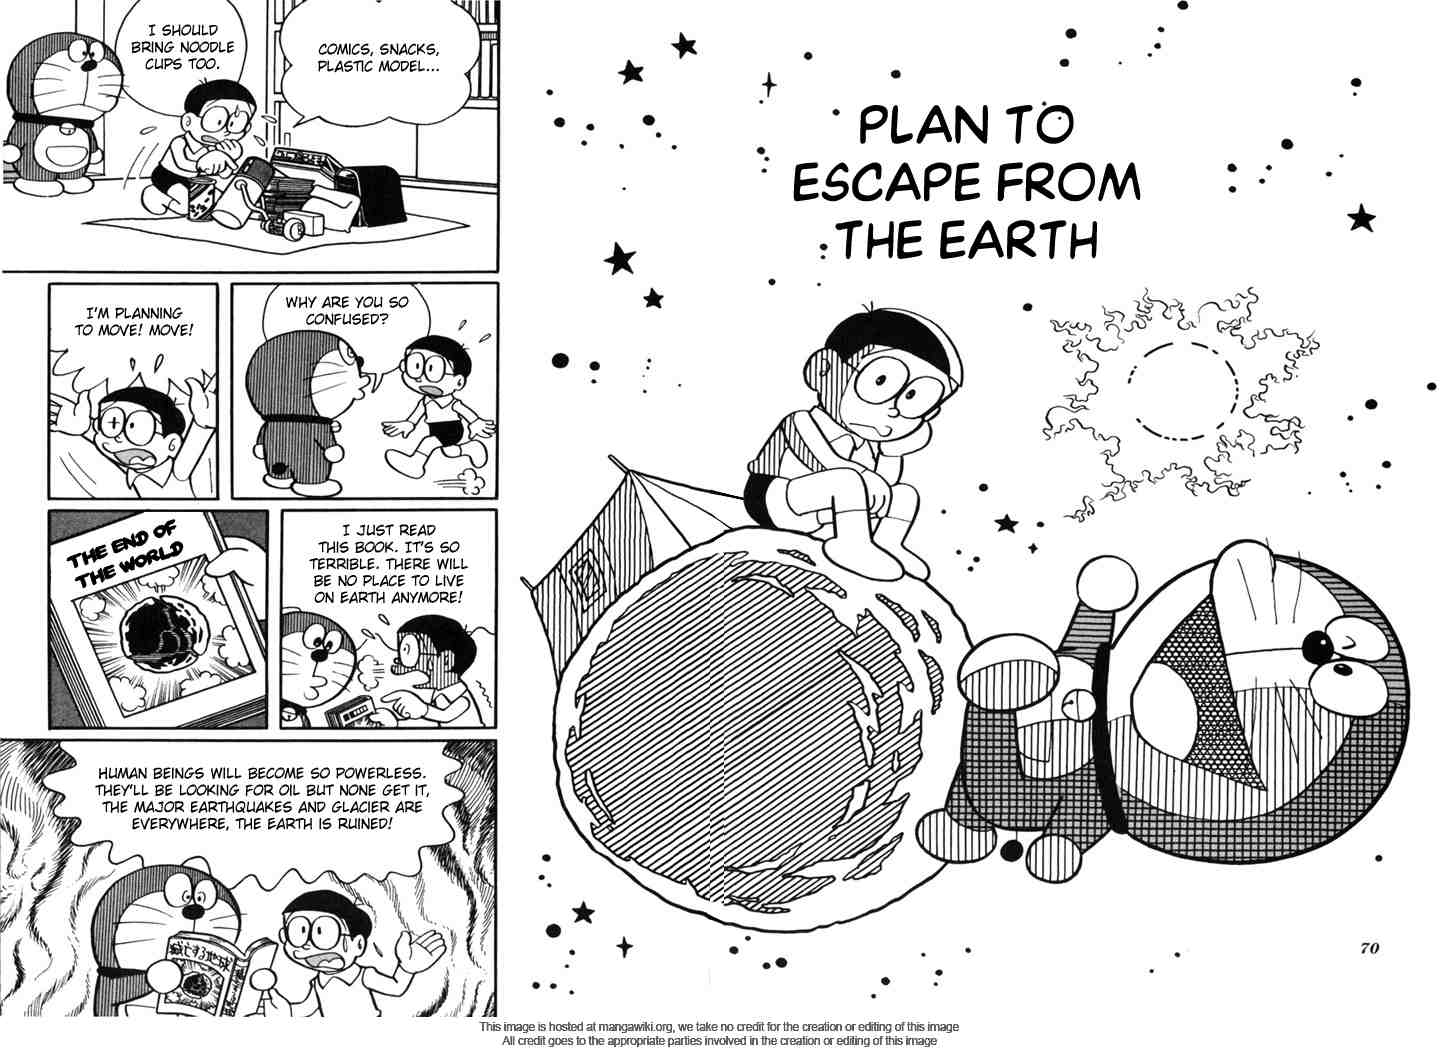 Chapter 9: Plan to Escape From The Earth